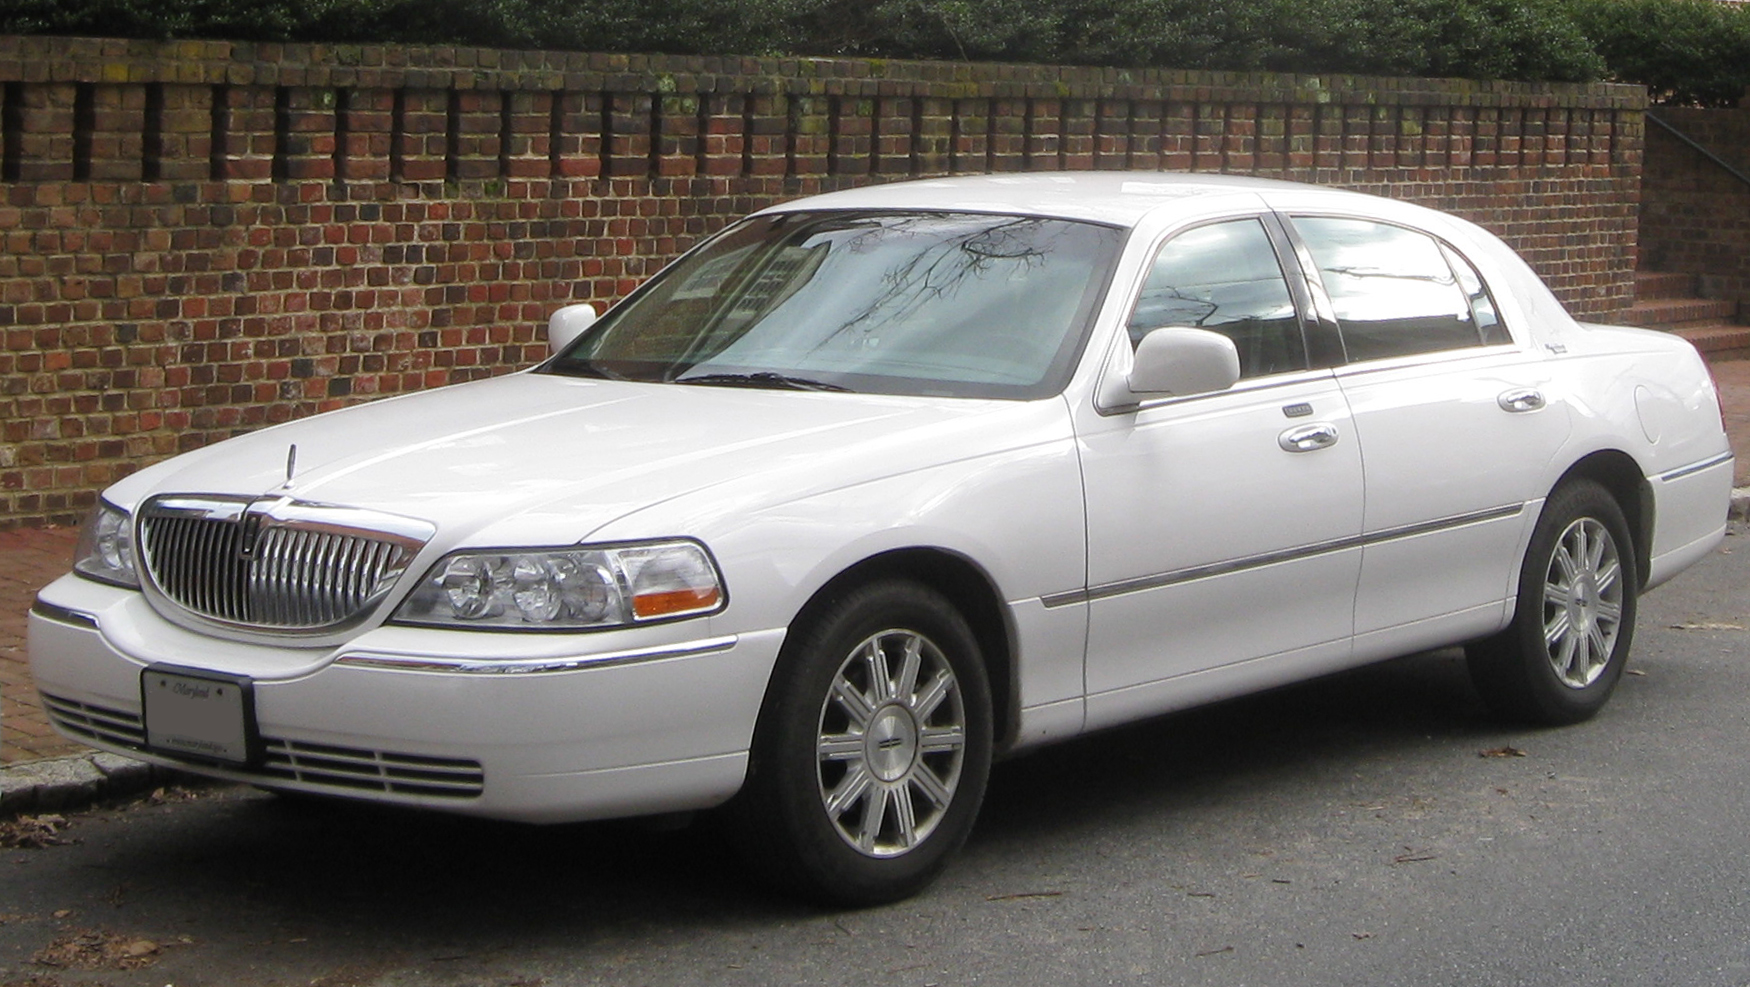 File Lincoln Town Car 01 28 2010 Jpg Wikimedia Commons